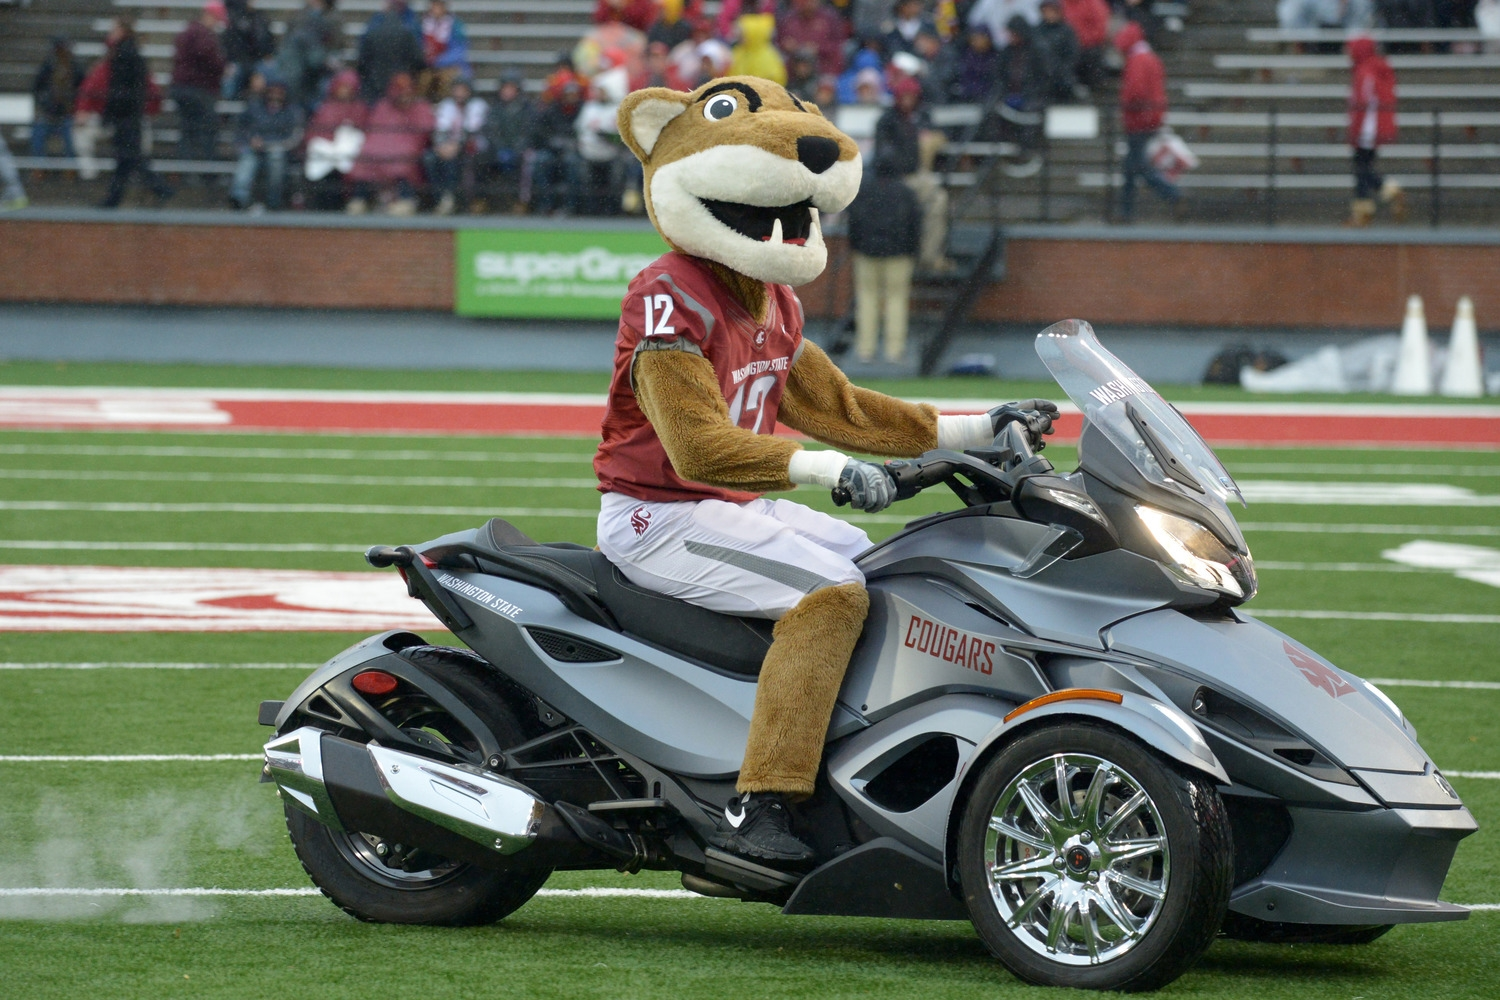 Okay, where did he get that brand new three-wheeler from? How is this not grounds for an NCAA investigation? I mean, aside from it being Washington State, a school that nobody cares about.